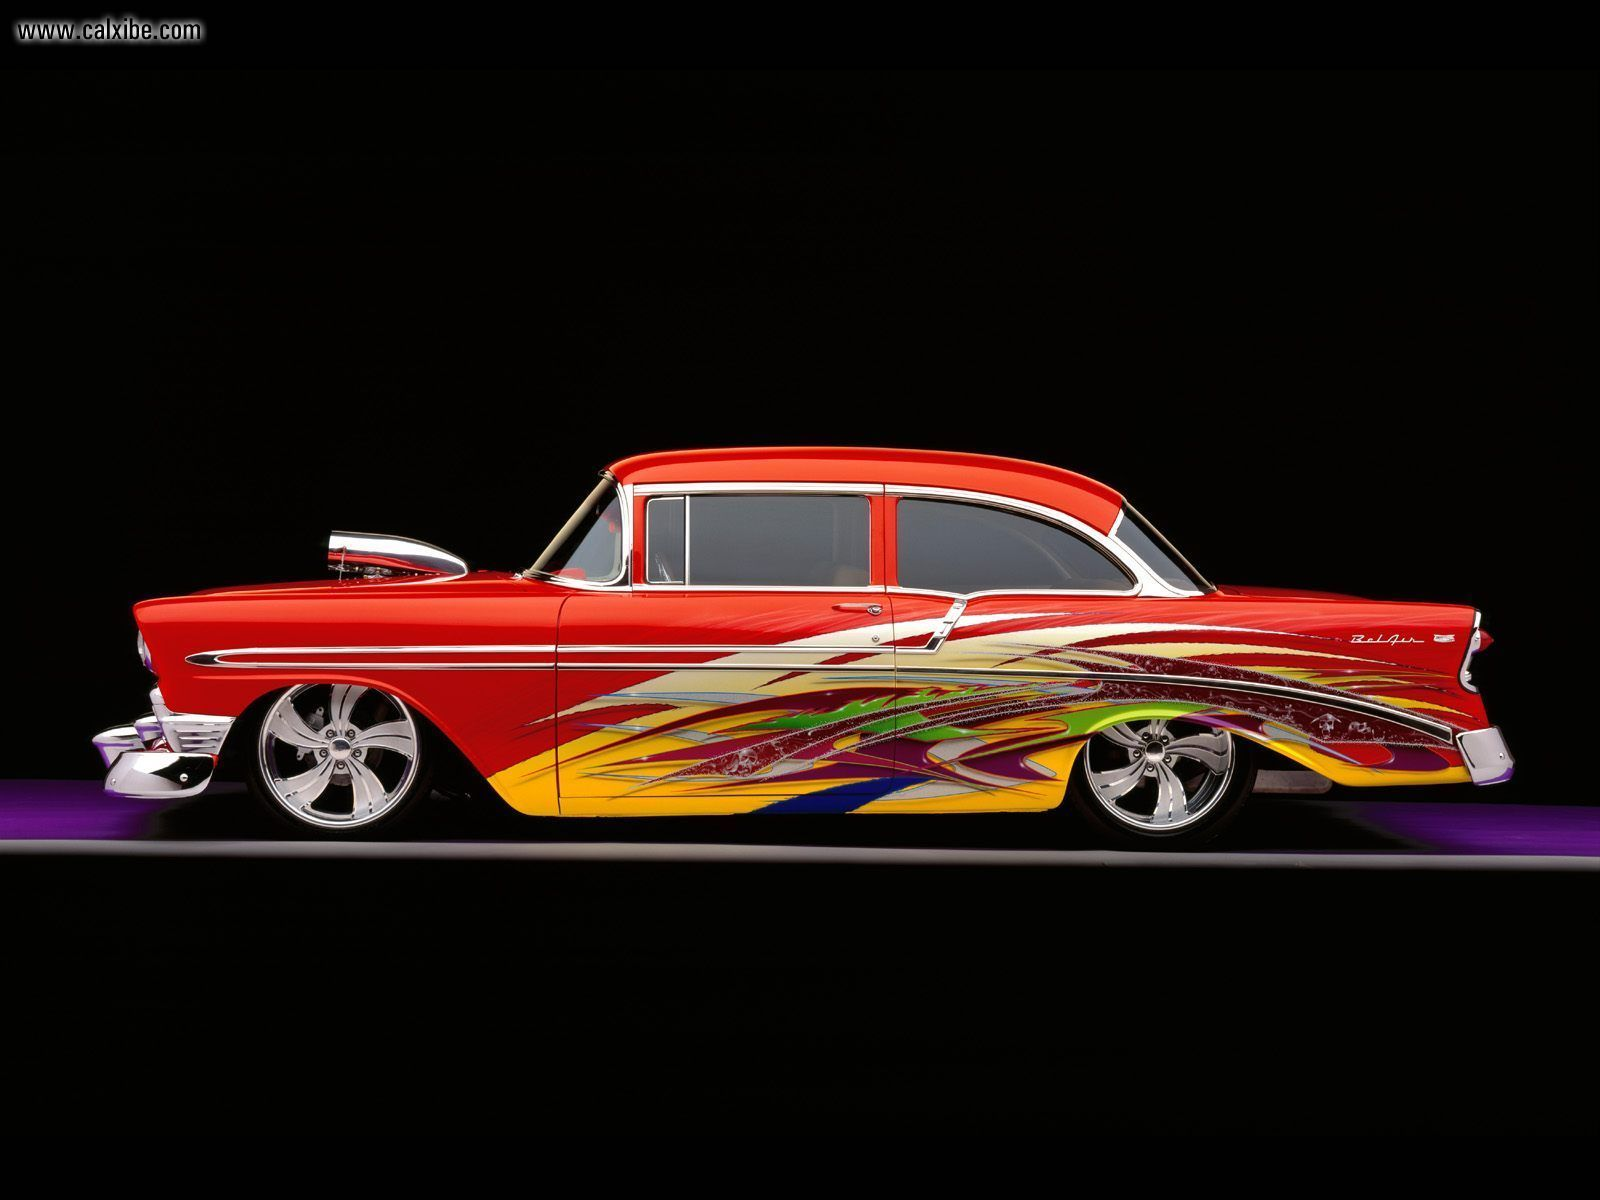 Cars 1956 Custom Chevy Bel Air desktop wallpaper nr 18406 1600x1200